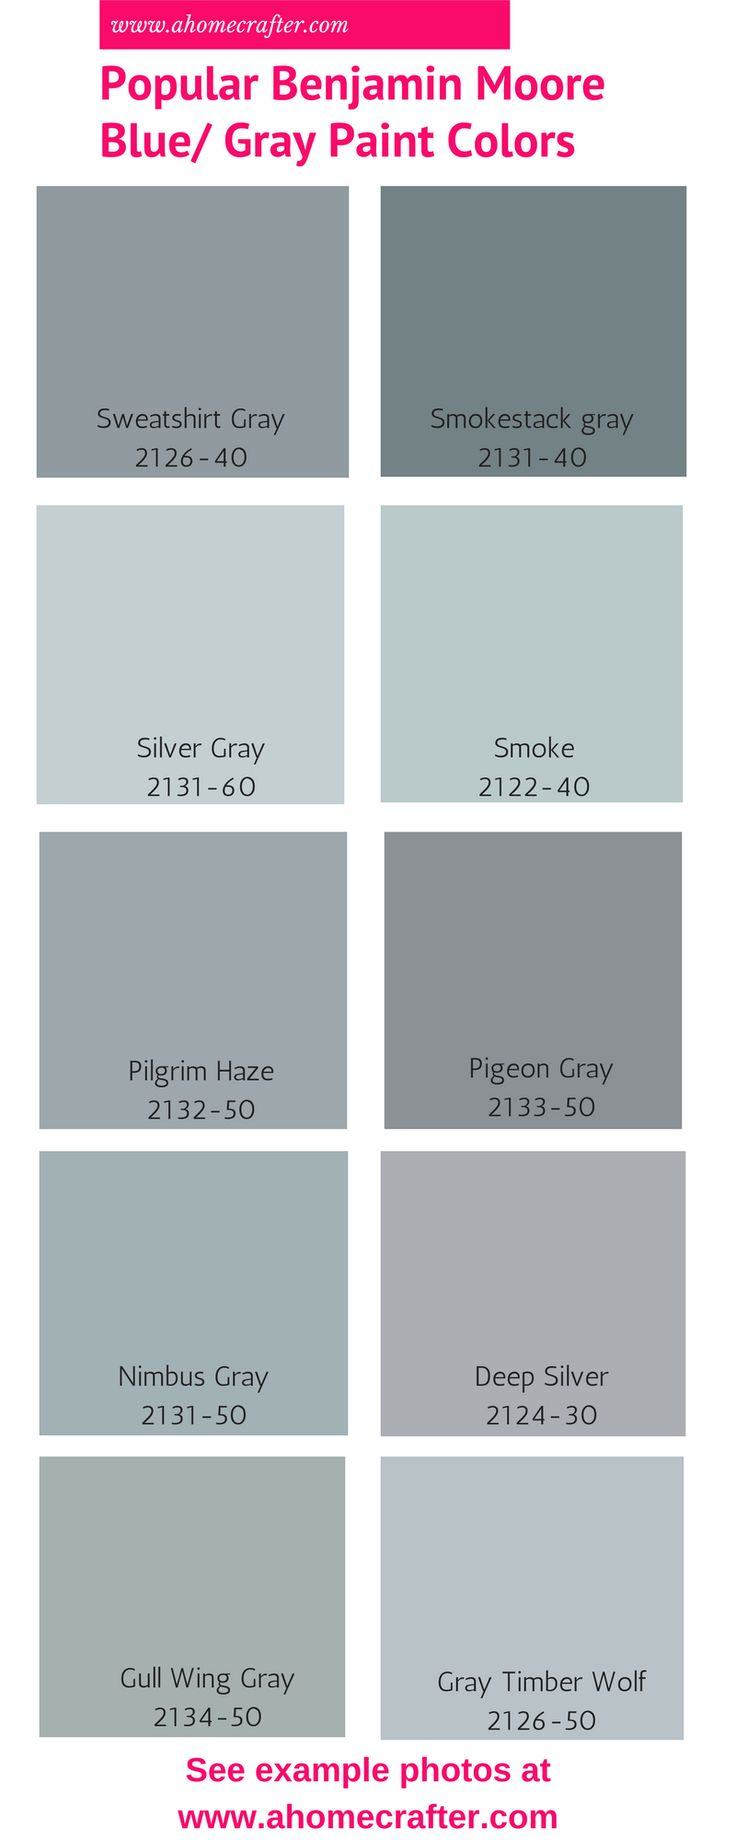 Bedroom Colors Grey Blue best 25+ blue gray bedroom ideas on pinterest | blue grey walls